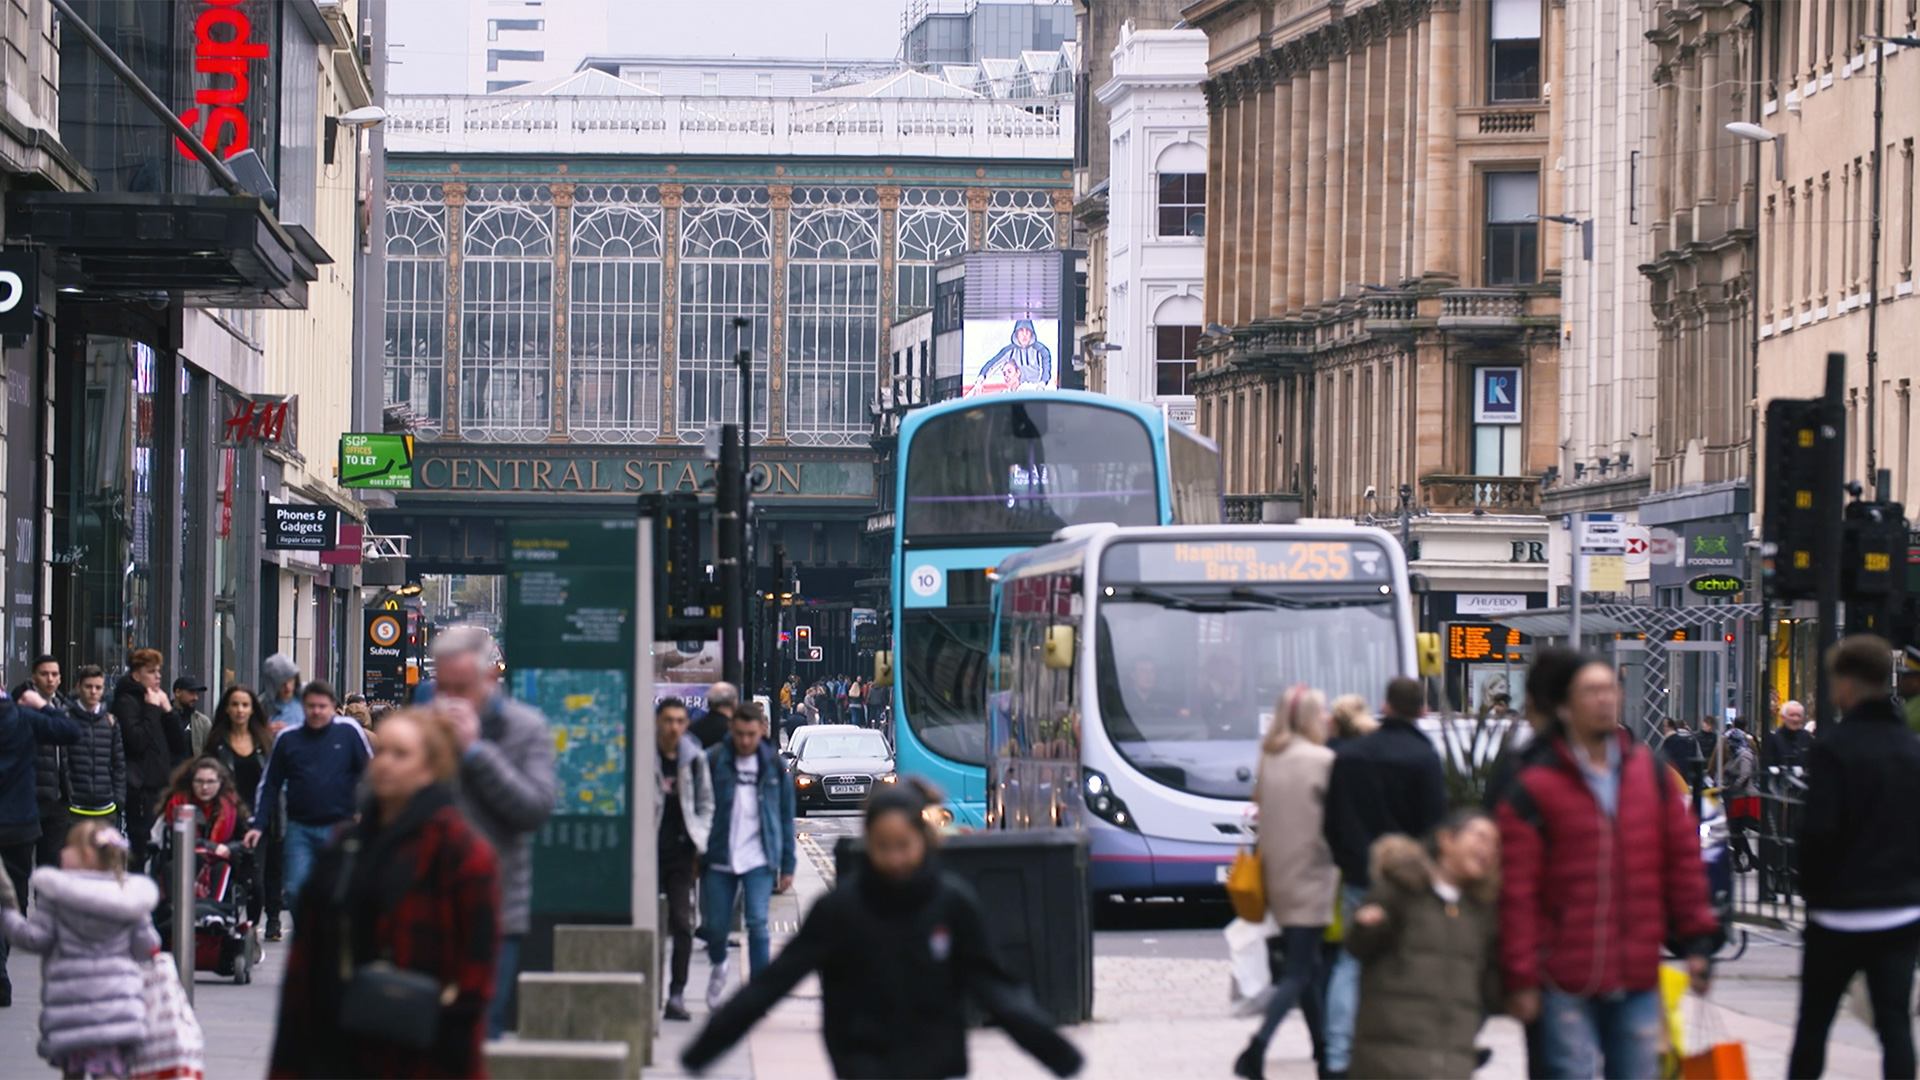 Argyll street, glasgow - busy with shoppers and traffic